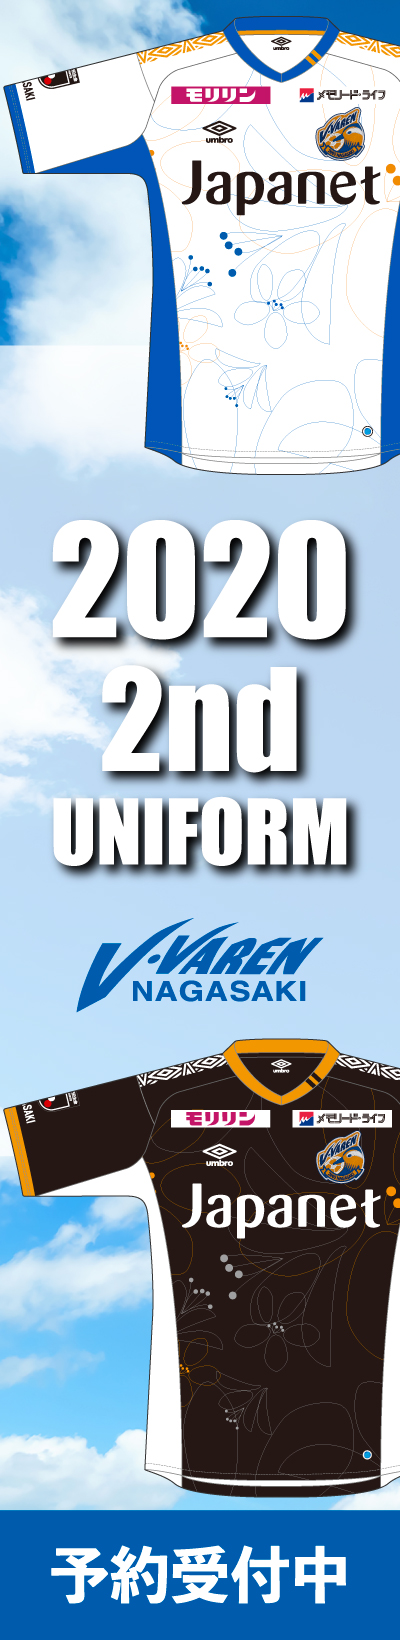 https://www.v-varen.com/shop/uniform.html